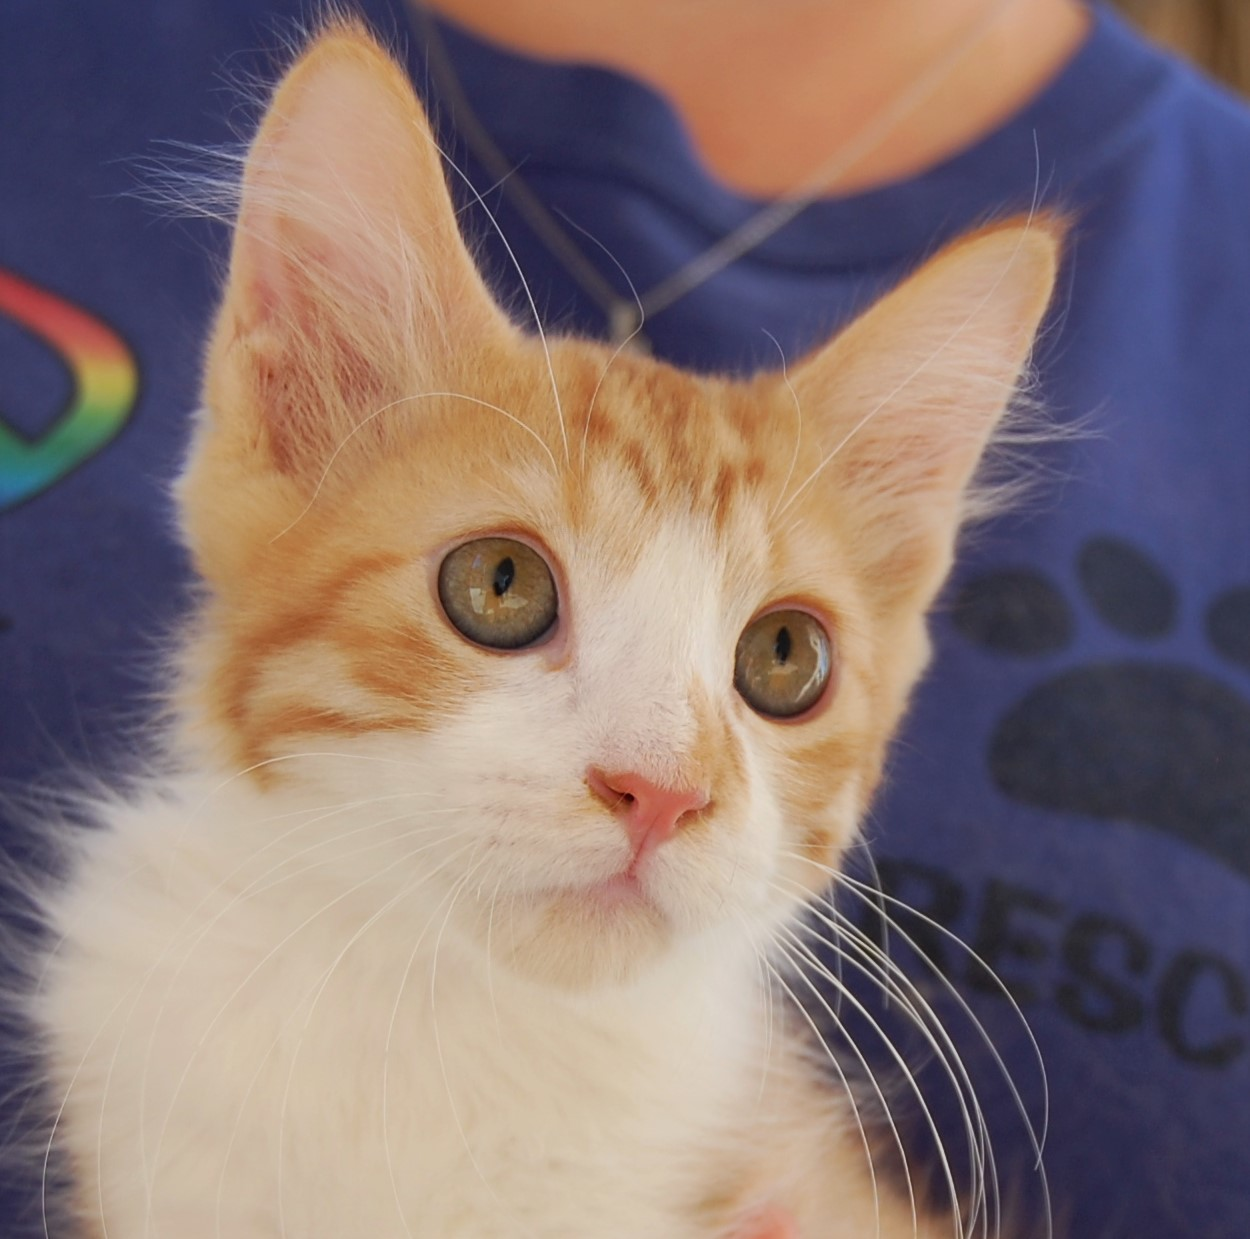 Nevada SPCA Animal Rescue 30 rescued kittens ready for adoption